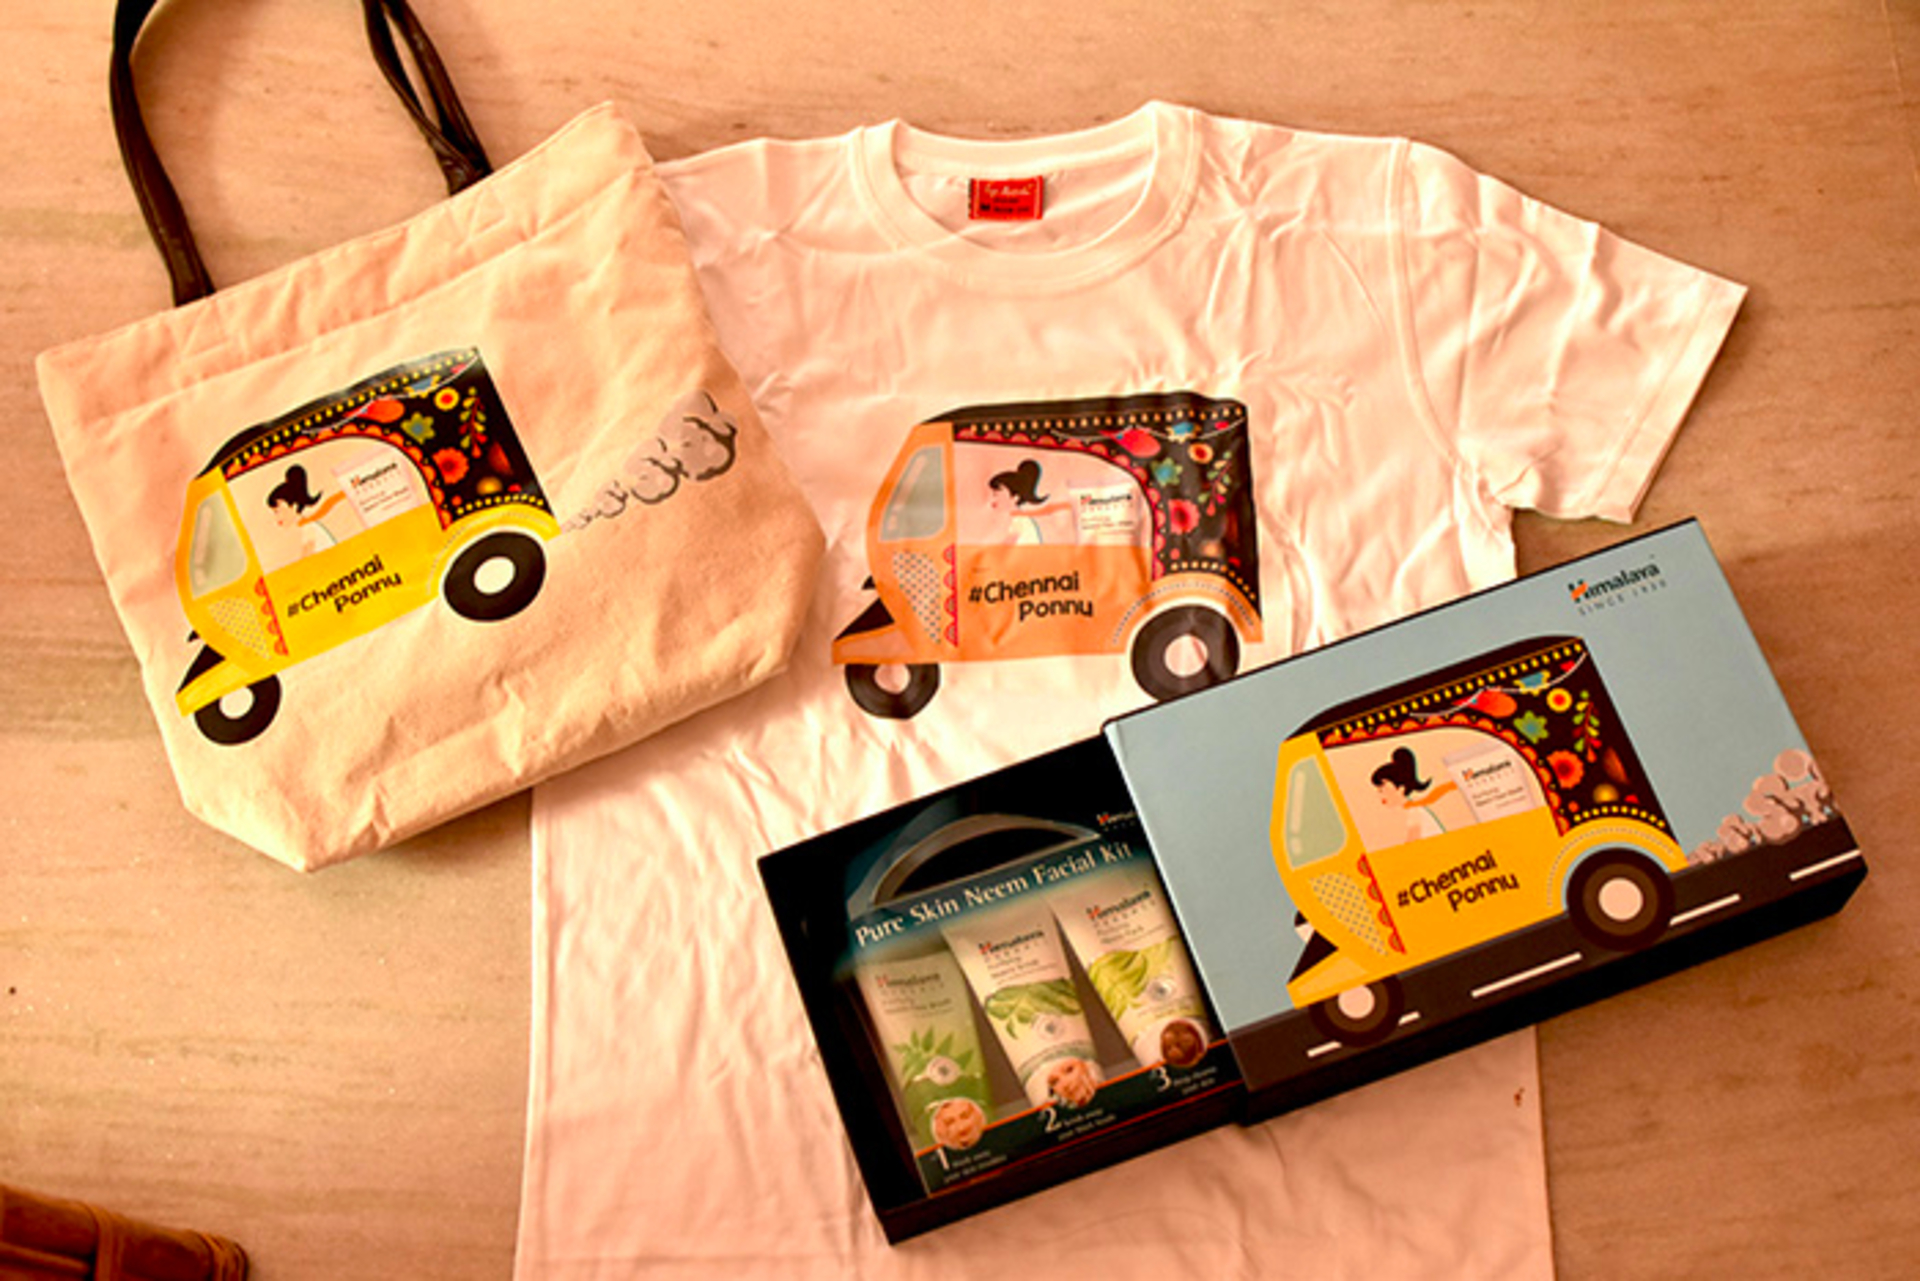 Chennai Ponnu- a campaign by Himalaya-product/campaign review image